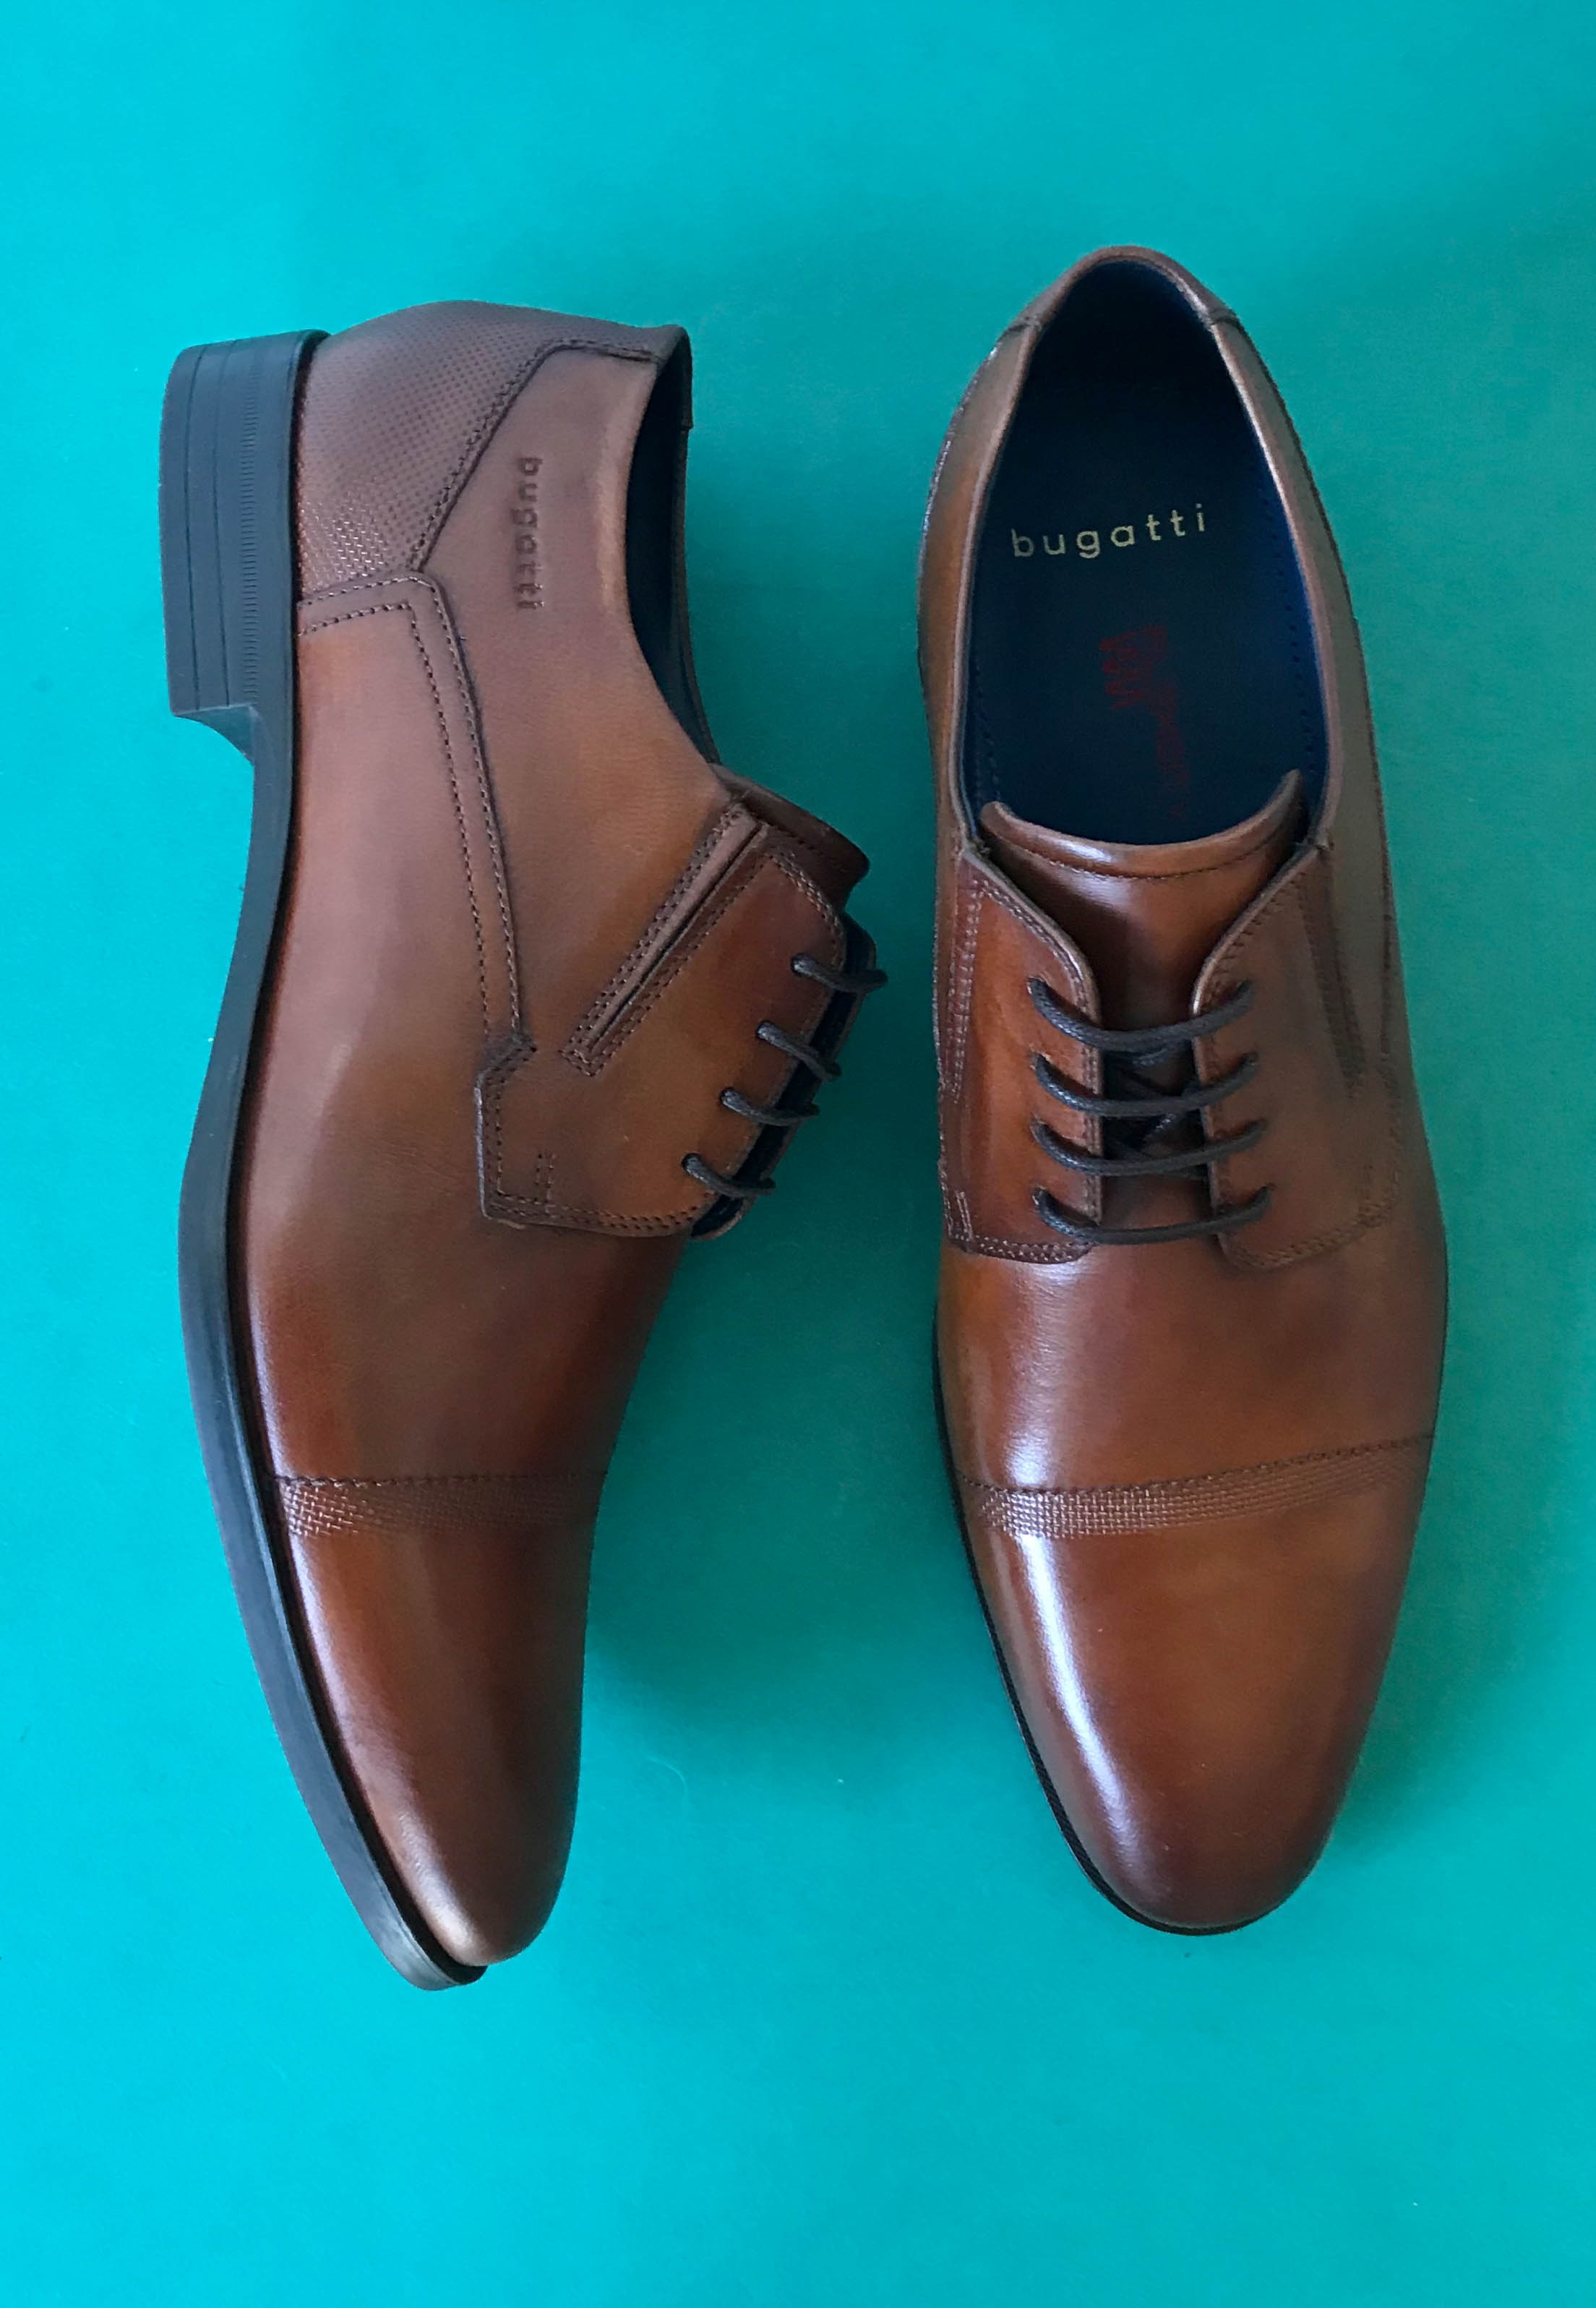 dress shoes for men tan bugatti